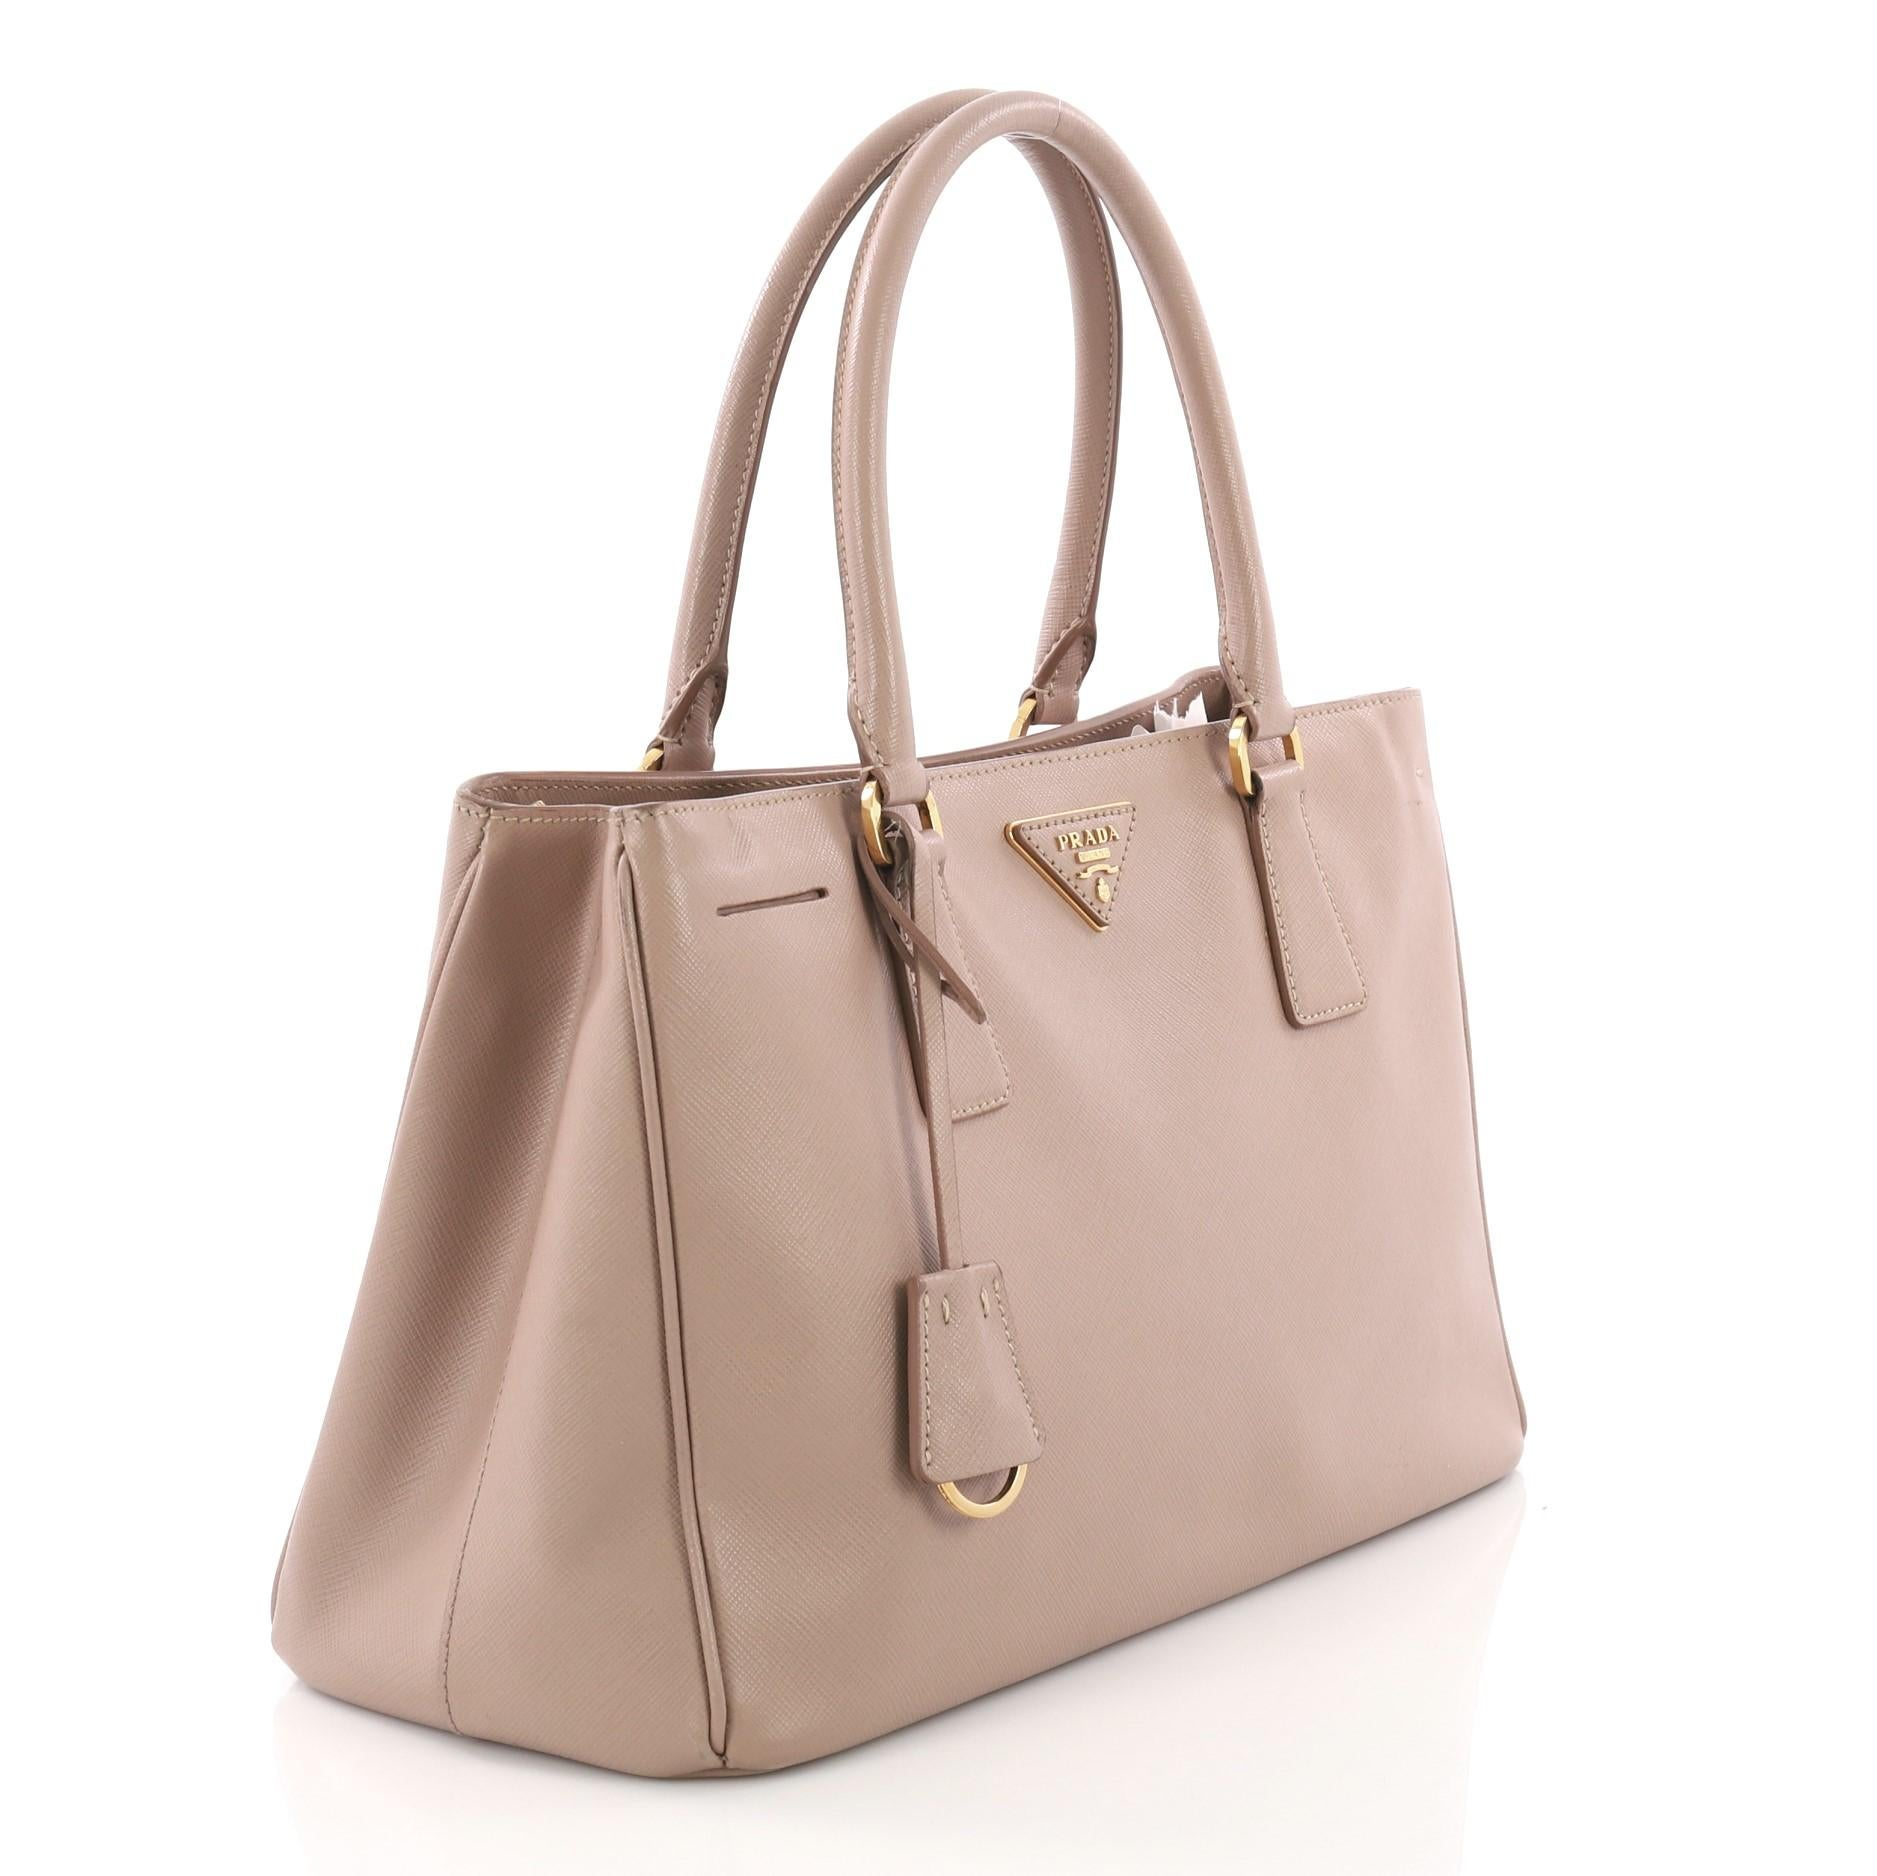 29086762bed8 new zealand brown prada double zip lux tote saffiano leather small for sale  24be1 f1541